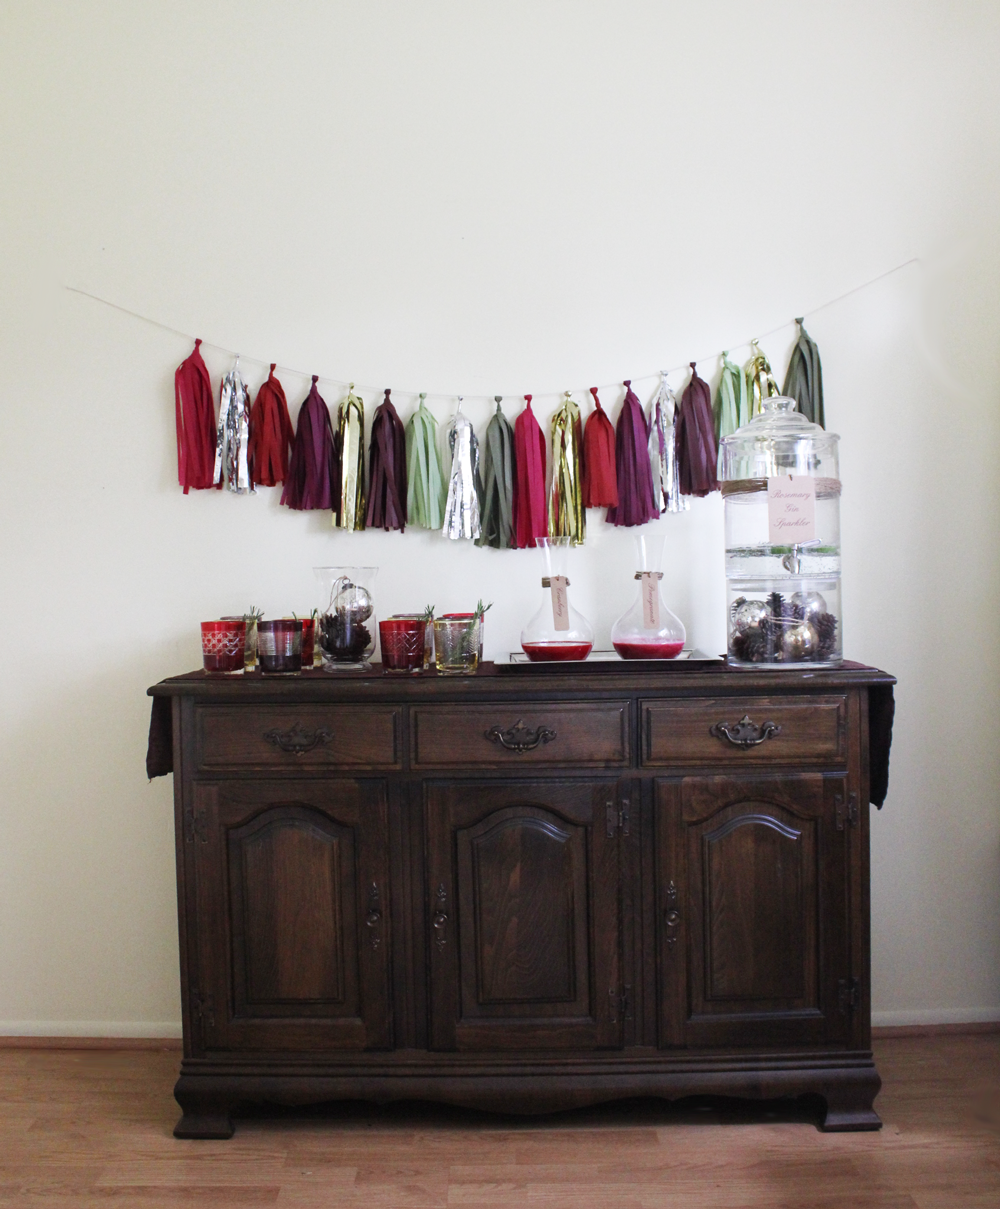 How To Set Up A Drink Station Handmade Decor The Flair